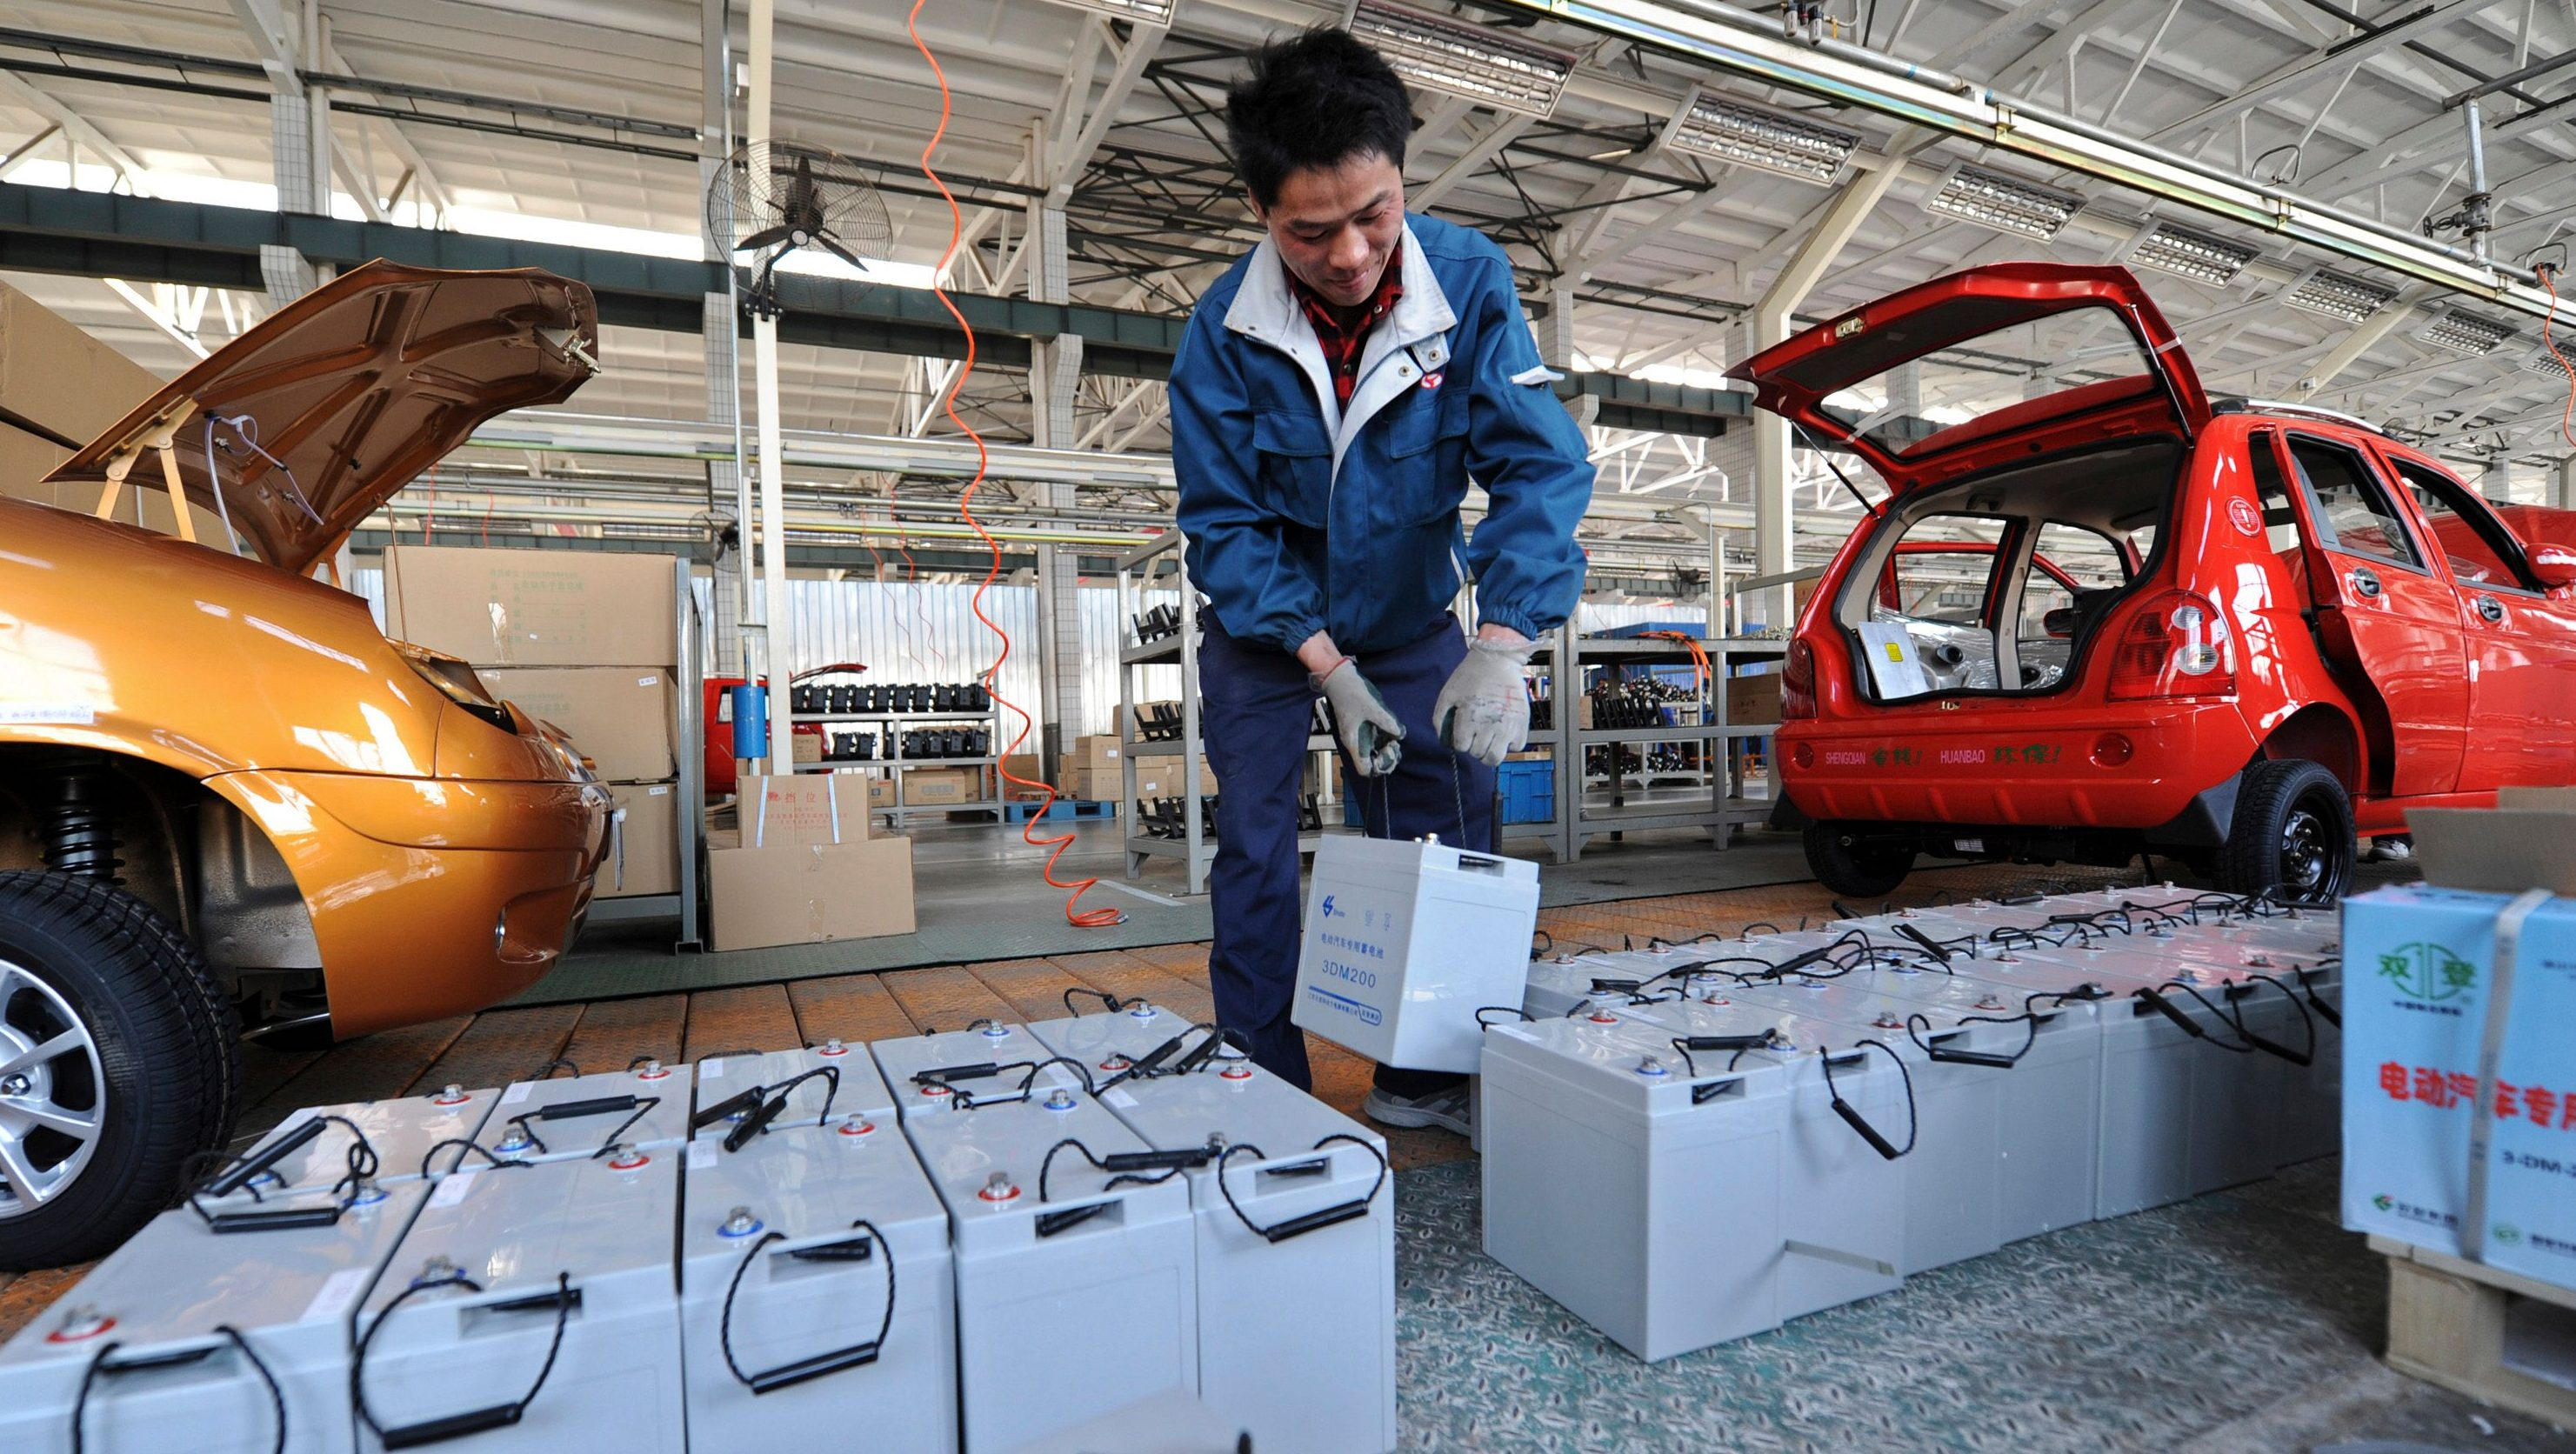 A employee carries a battery as he works on an assembly line of electric cars at a factory of Shandong Shifeng (Group) Co. Ltd. in Jinan, Shandong province April 6, 2012. Shifeng is the top player in the market, with about a 50 p ercent share. Shifeng delivered nearly 30,000 cars to its 200 dealer outlets across the country in 2011. Sales this year could hit 50,000, about a 13-fold increase over the level in 2008, the first full year of sales, said company vice president Lin Lianhua. Picture taken April 6, 2012. REUTERS/Stringer